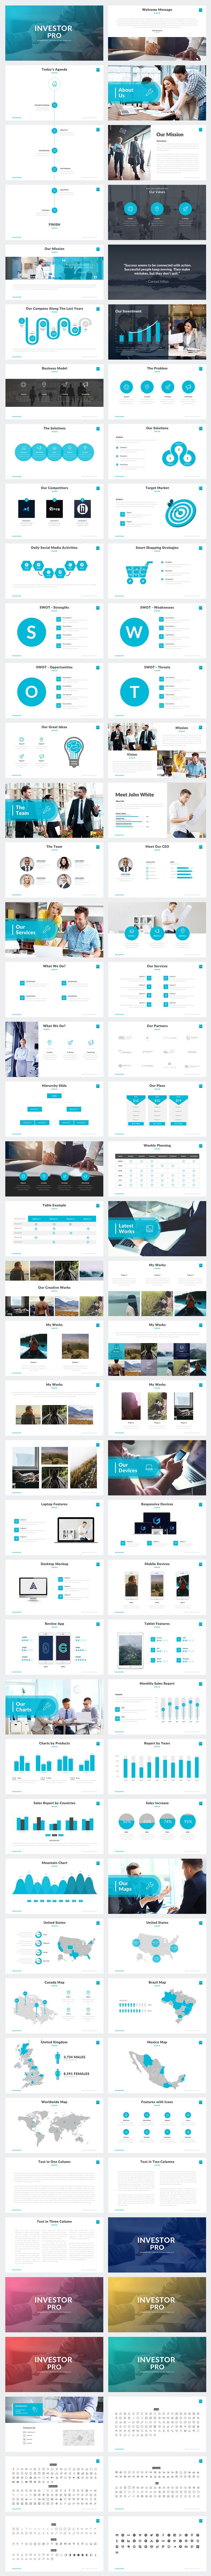 Investor Pro Powerpoint Template by Rocketo Graphics on @creativemarket